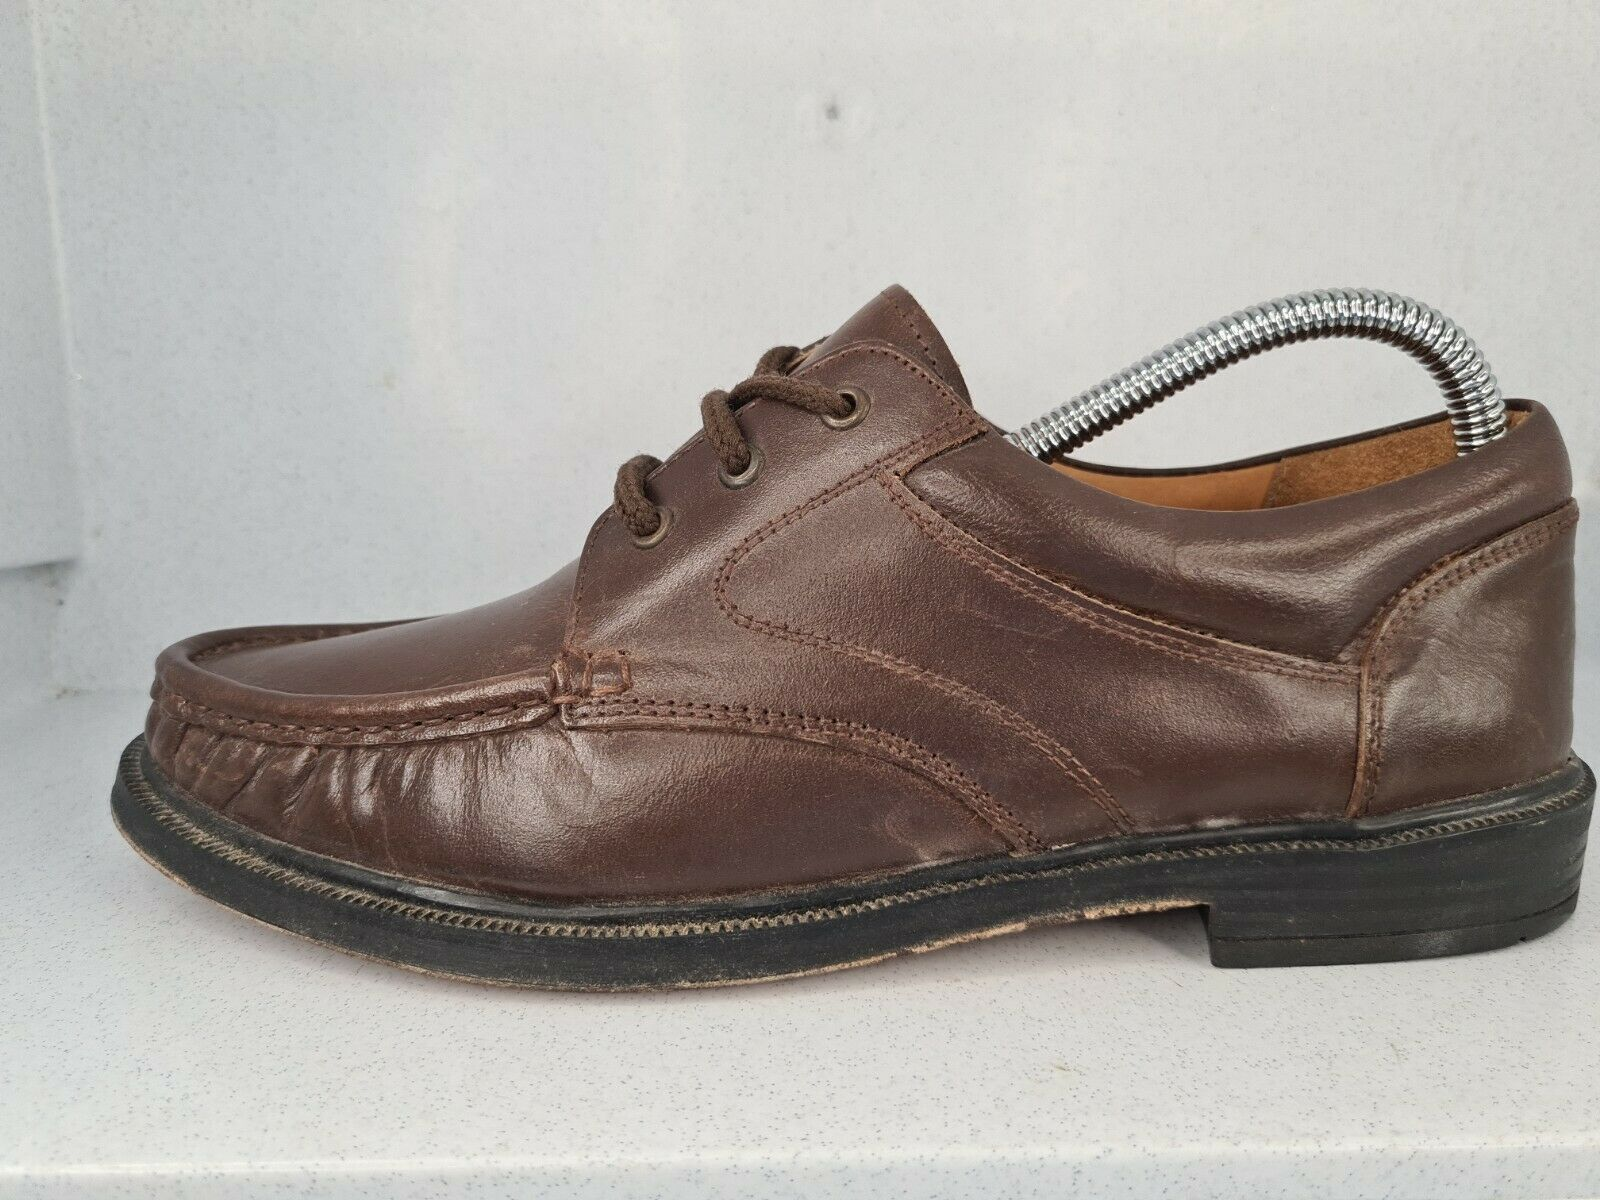 Clifford James Mens Brown All Leather Lace Up Smart Casual Shoes Vintage UK7 VGC